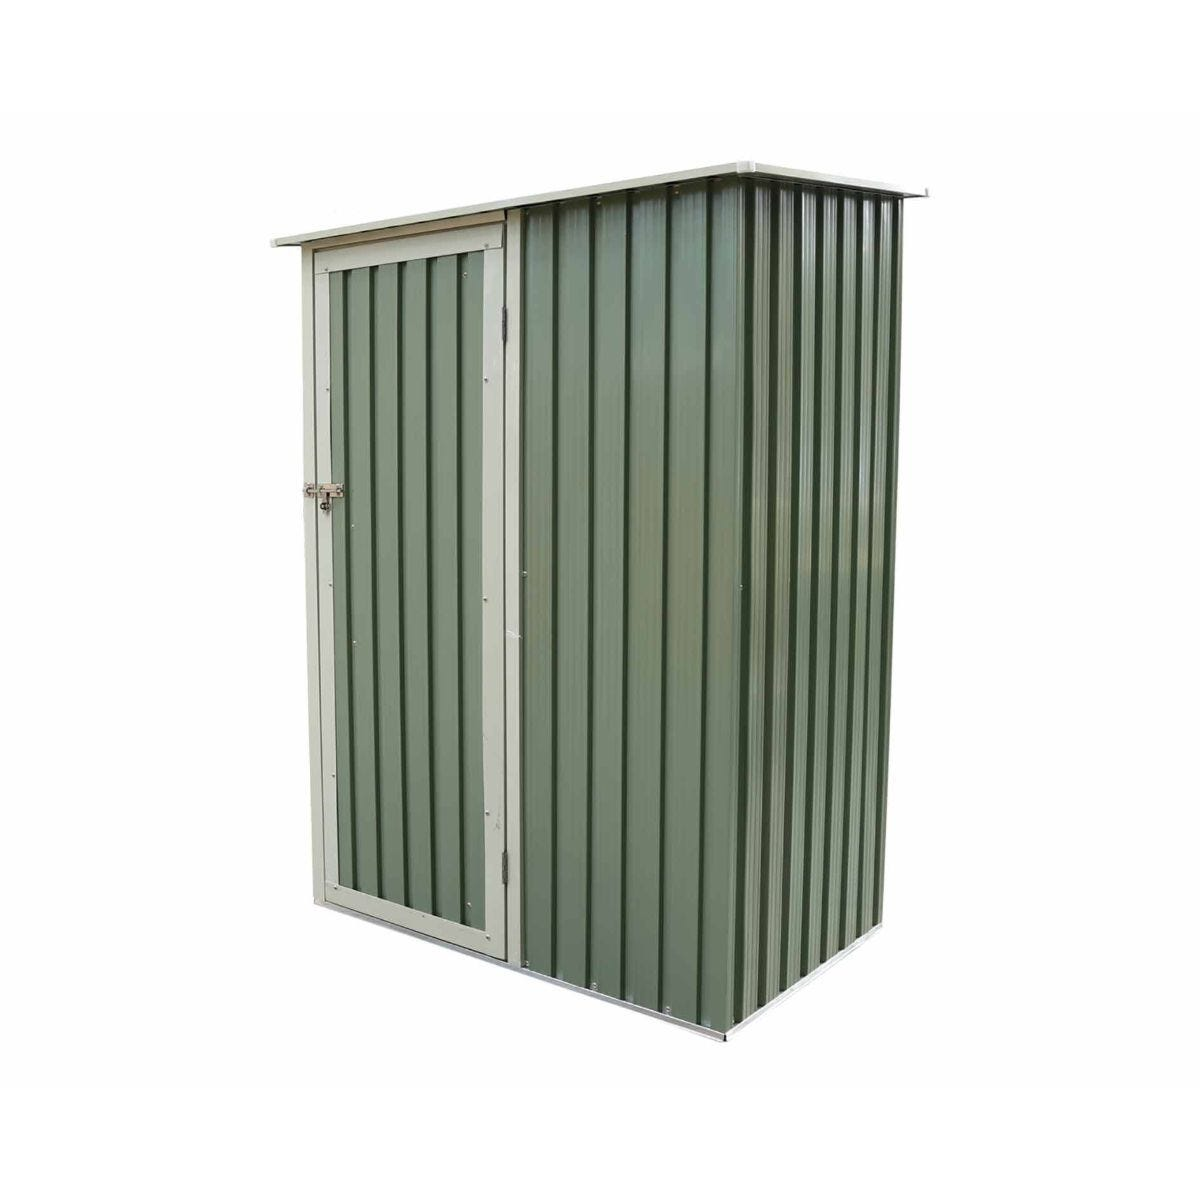 Charles Bentley 4-7ft x 3ft Metal Storage Shed